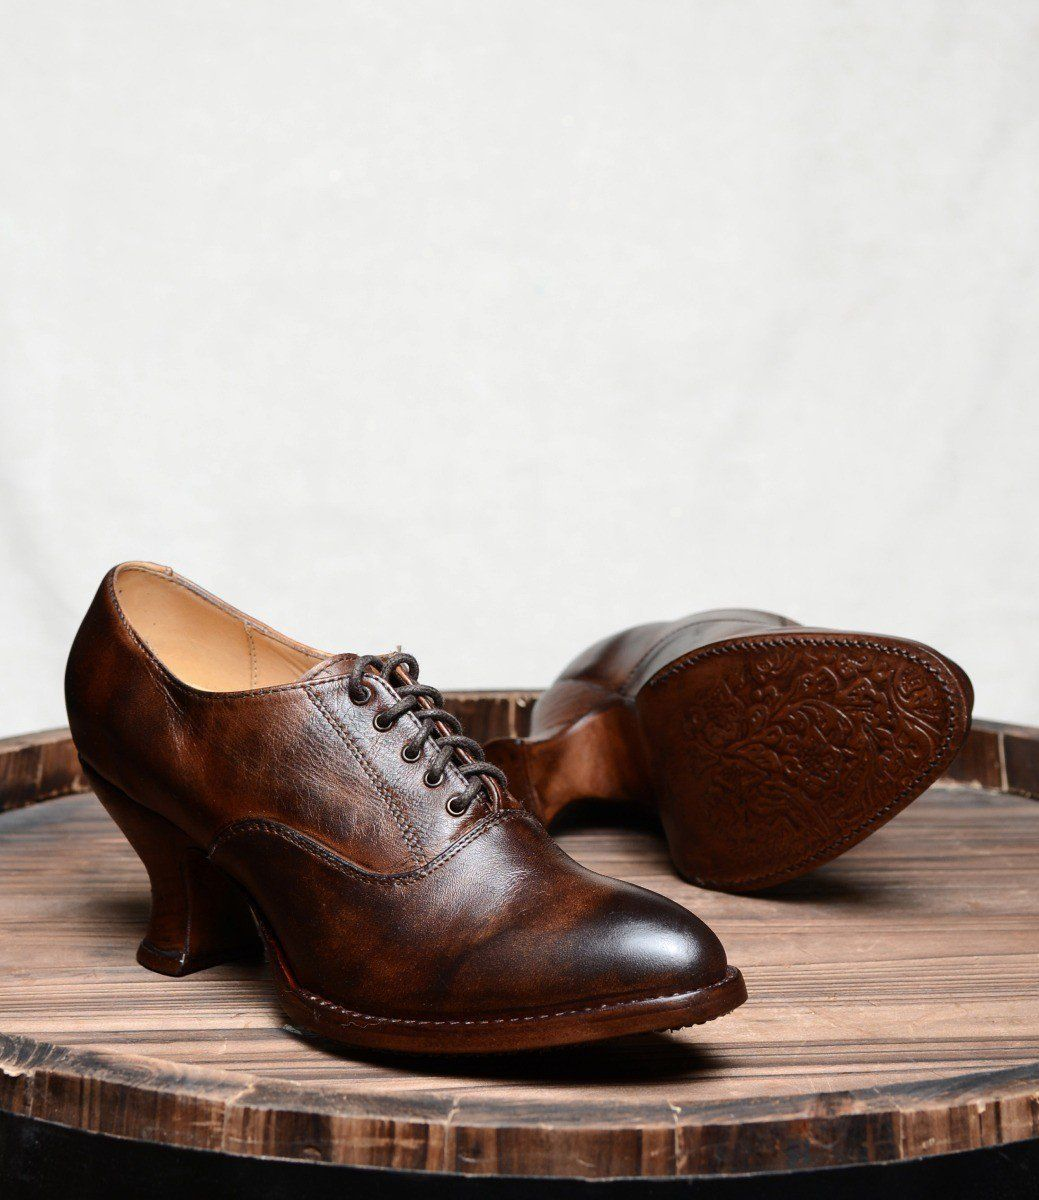 073b5c90d42b Steampunk Boots   Shoes Victorian Style Leather Lace-Up Shoes in Teak  Rustic  195.00 AT vintagedancer.com